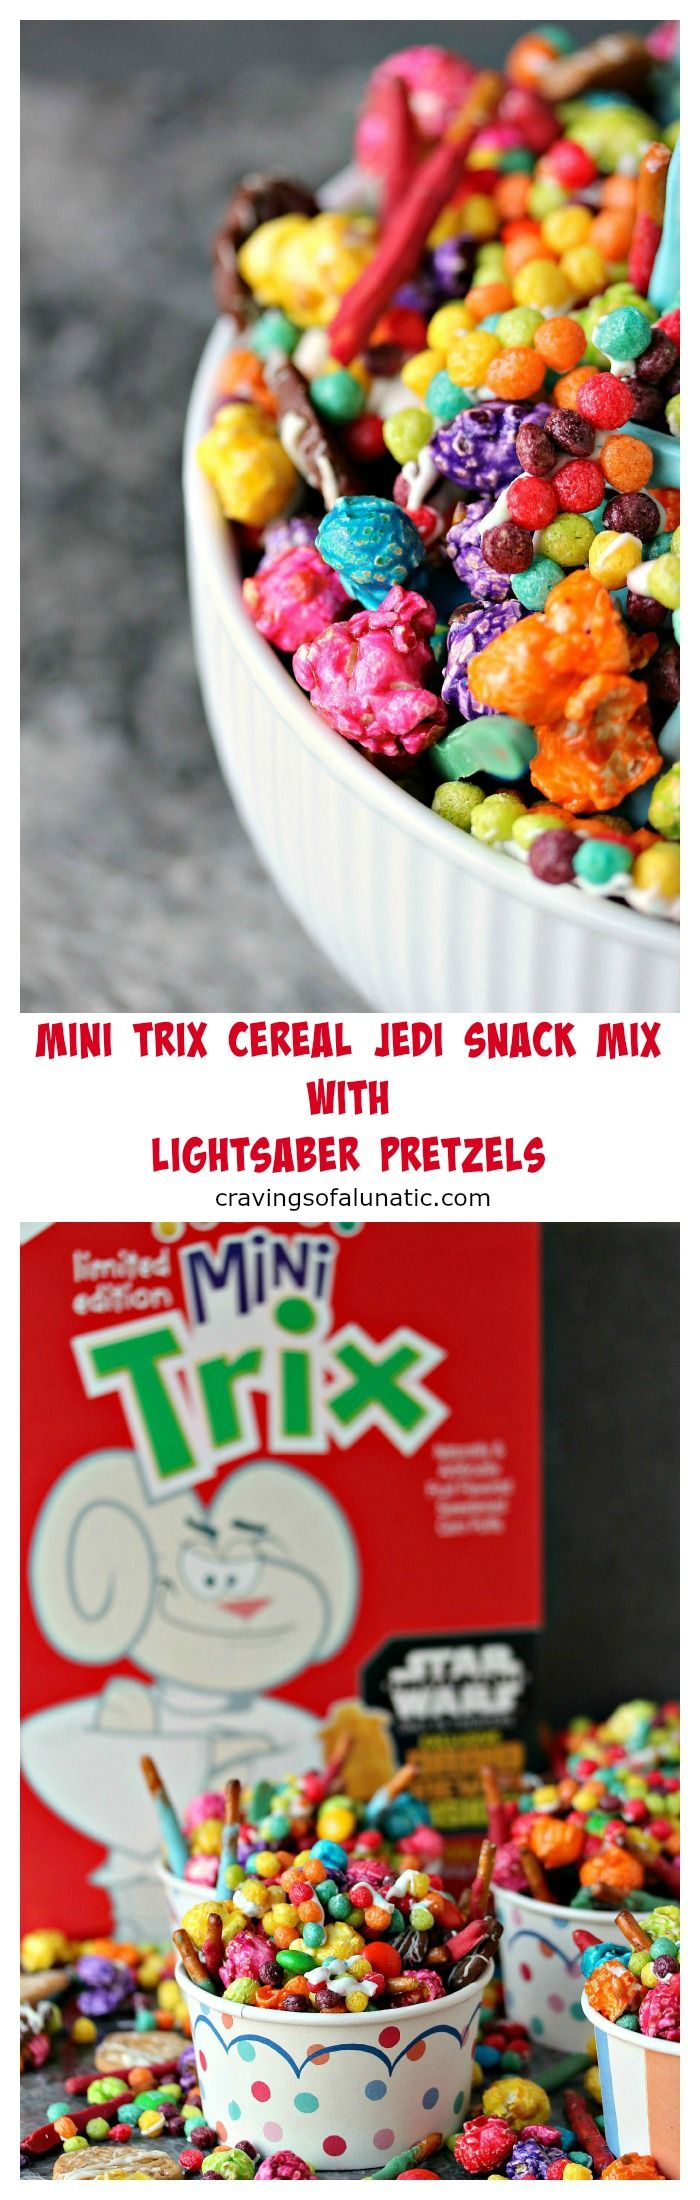 Mini Trix Cereal Jedi Snack Mix with Lightsaber Pretzels by cravingsofalunatic.com- This Jedi Snack Mix uses Mini Trix Cereal, Pretzels made into Lightsabers, coloured popcorn, tiny wafer cookies and M&M Candies. It's the perfect snack for the premiere of Star Wars: The Force Awakens! May the force be with you! (@CravingsLunatic) #sponsored